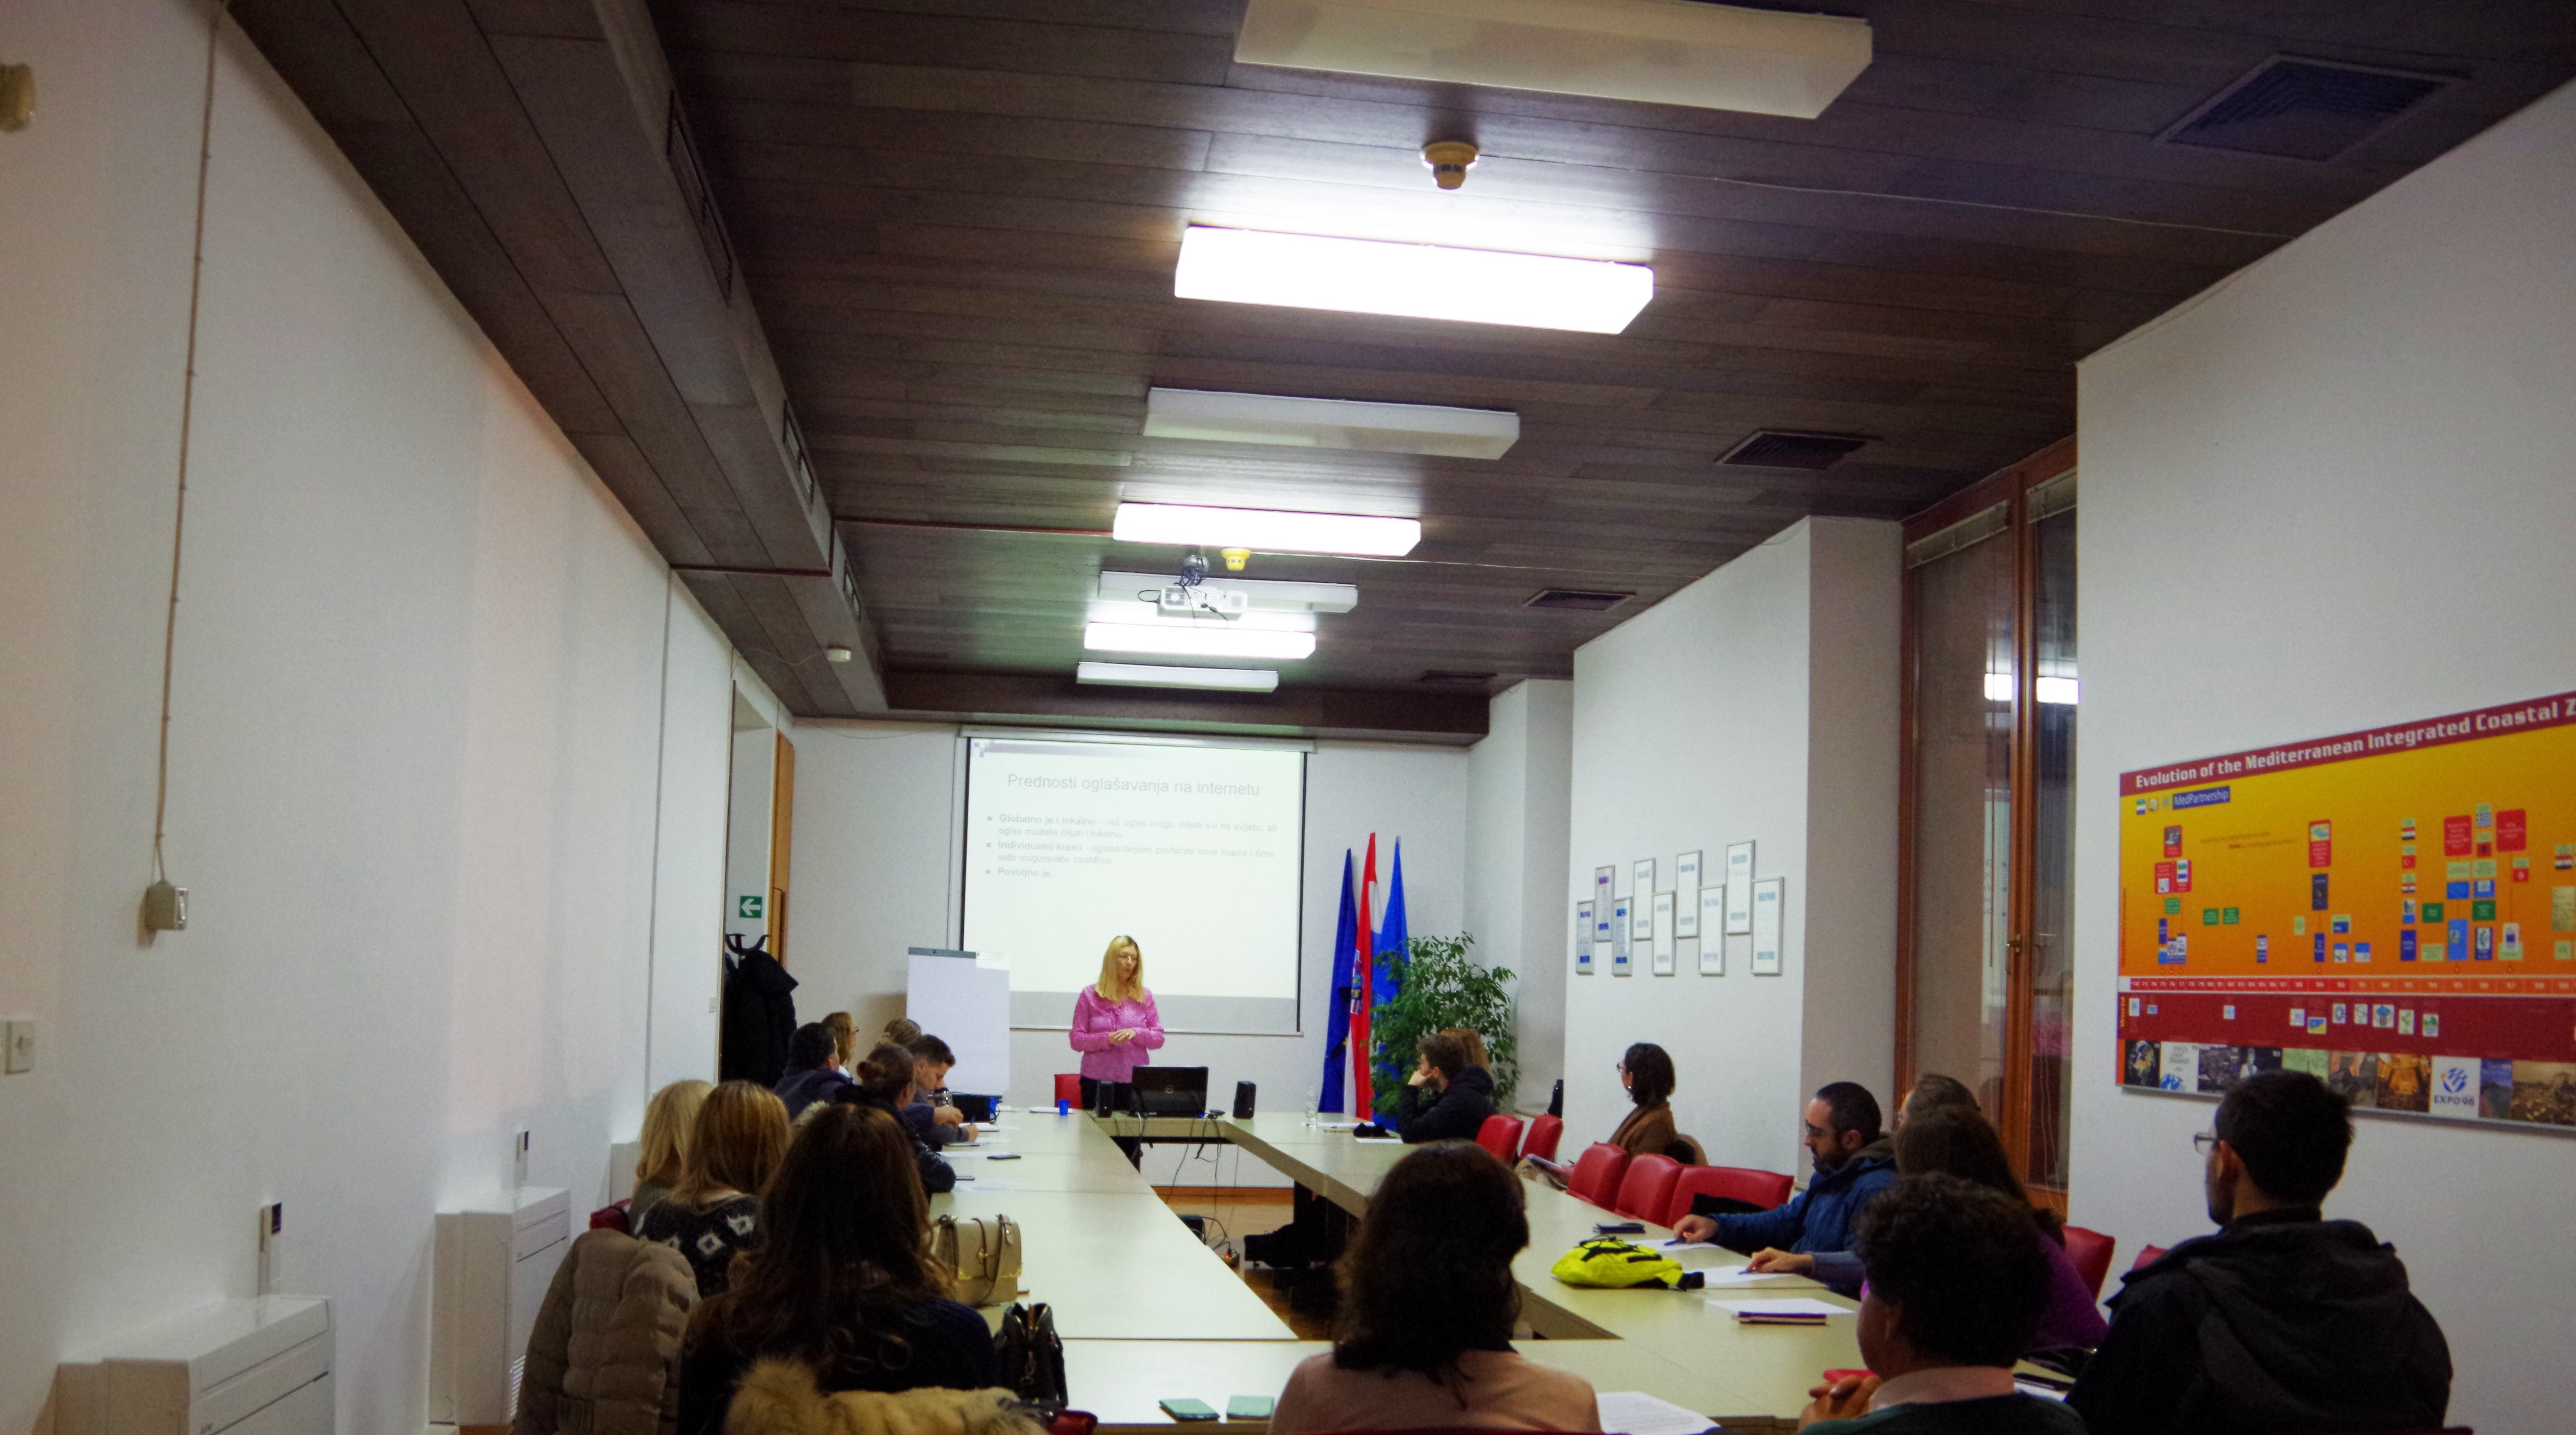 Education was held on Internet marketing methods for eco-owners and entrepreneurs